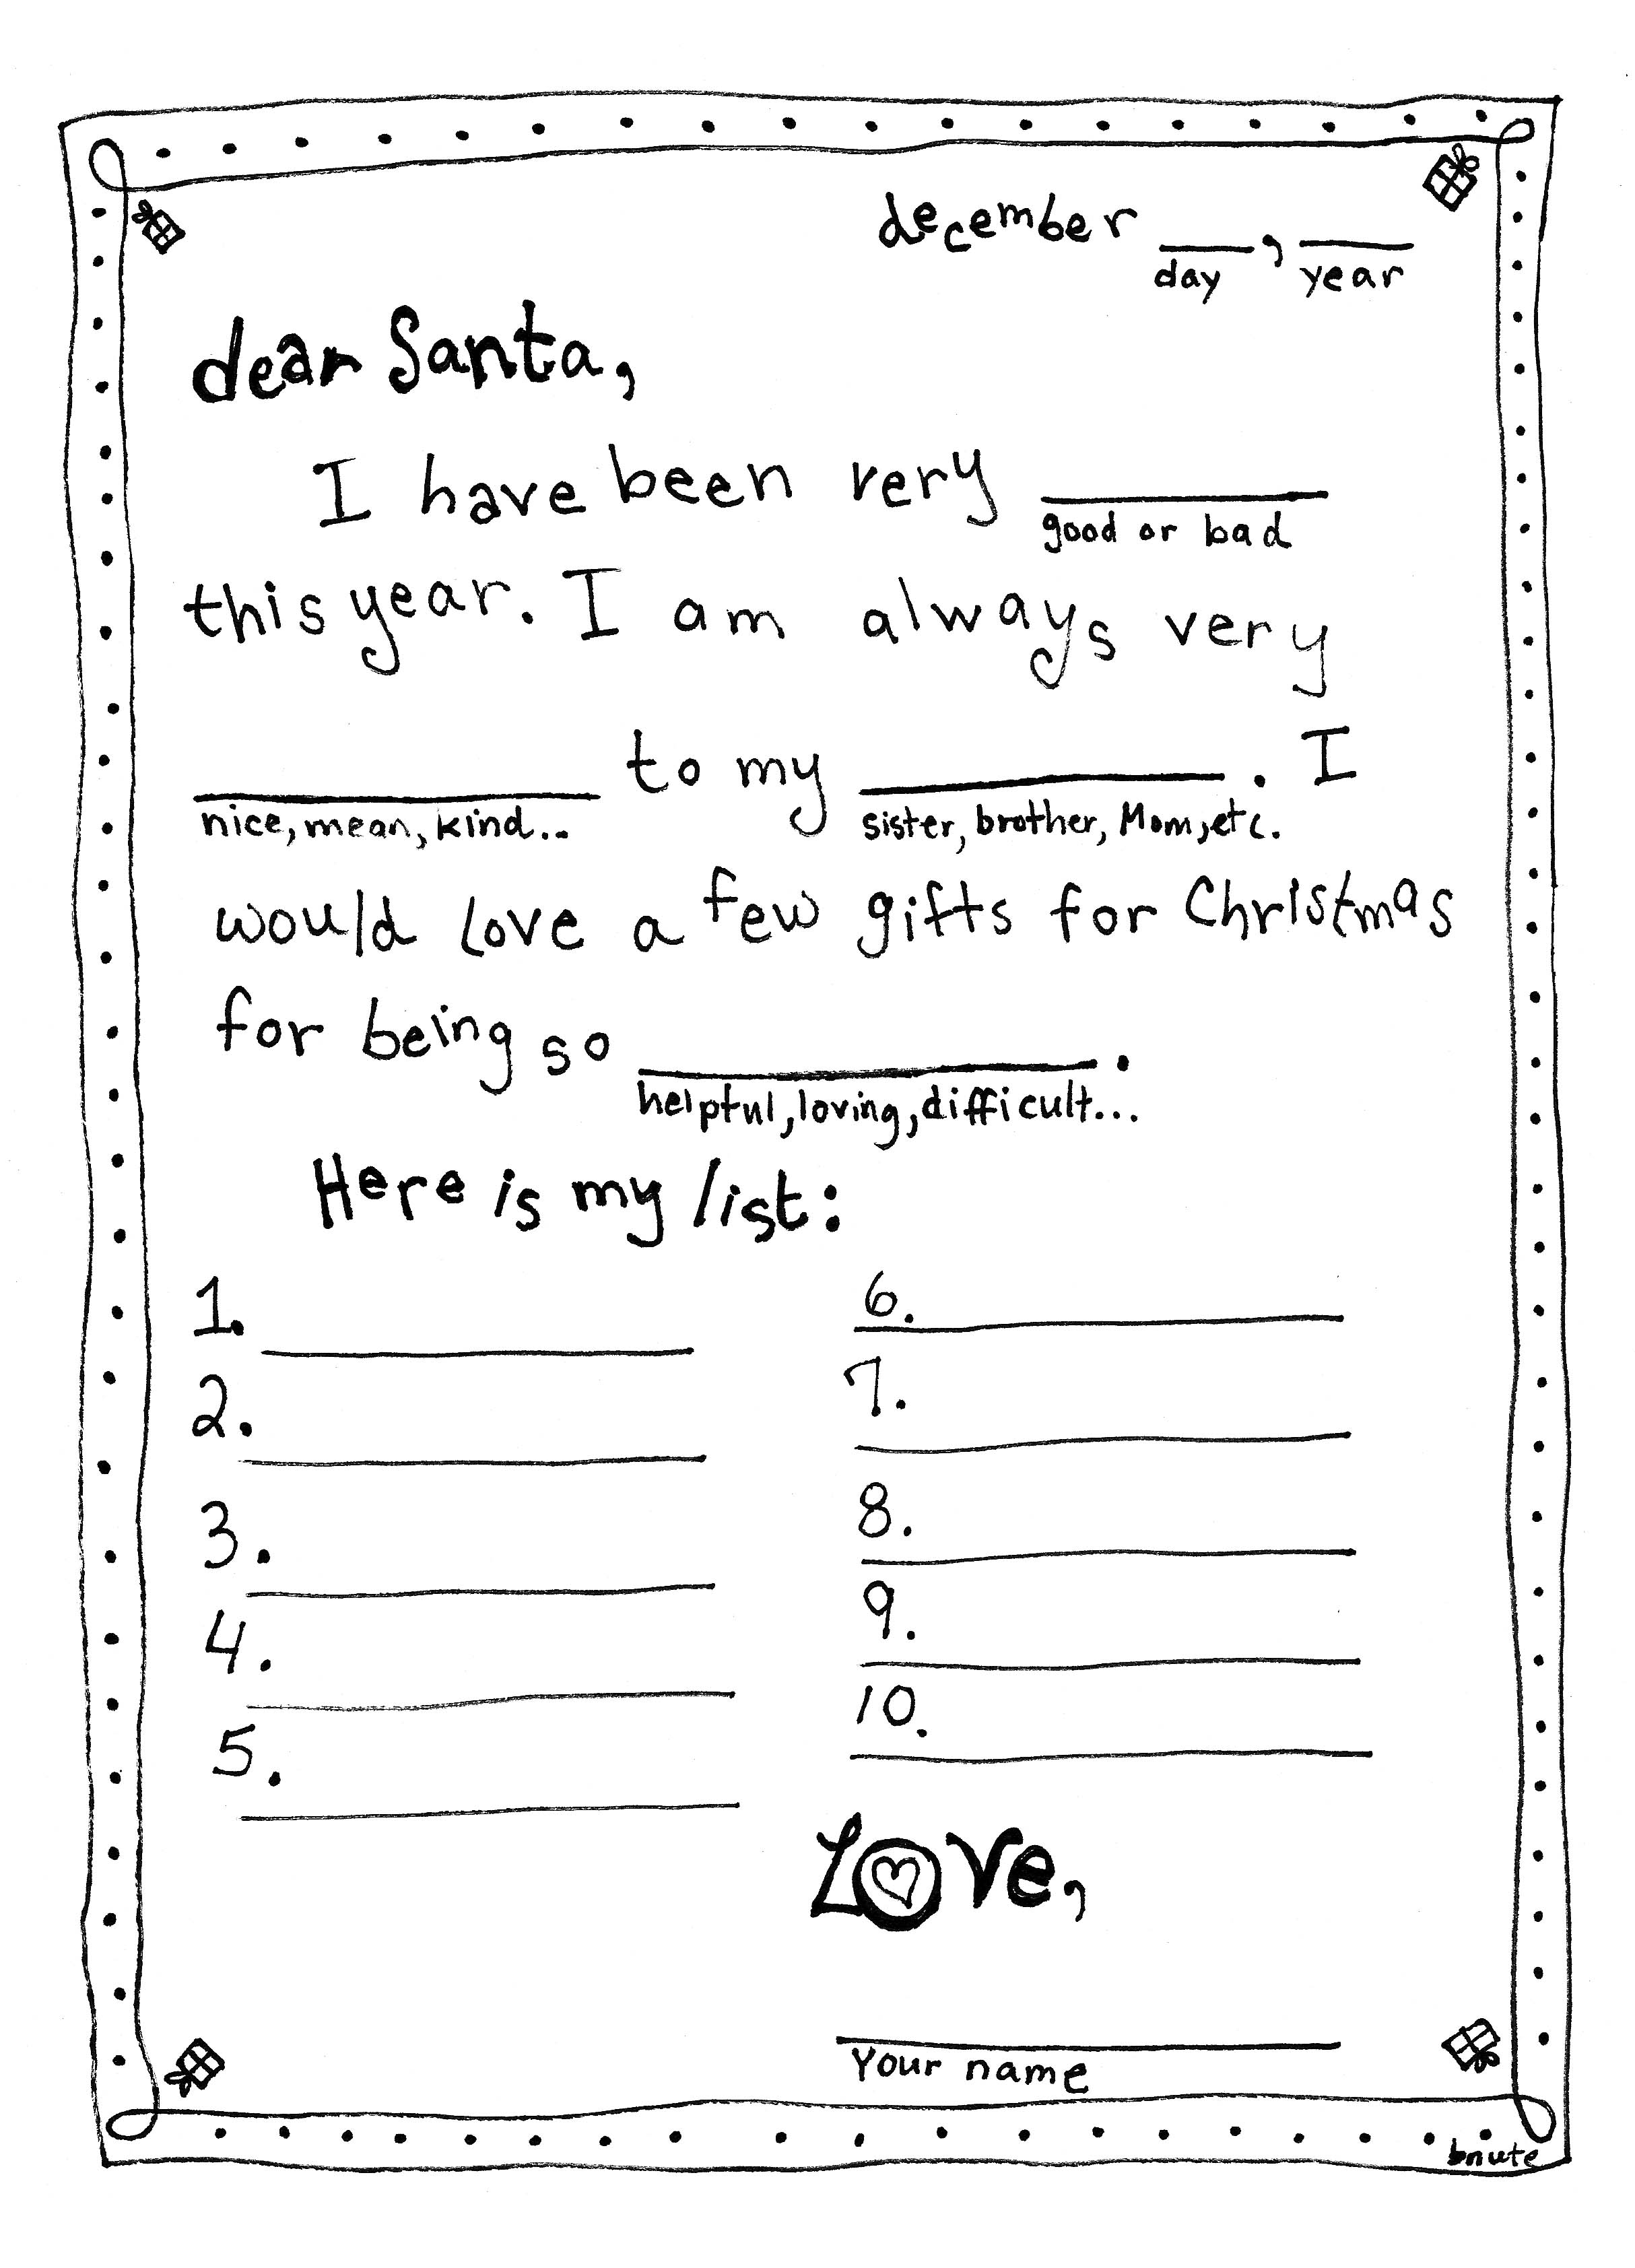 Bnute productions letter to santa mad libs style madlibs style letter to santa click this link to view then print your letter to santa spiritdancerdesigns Gallery